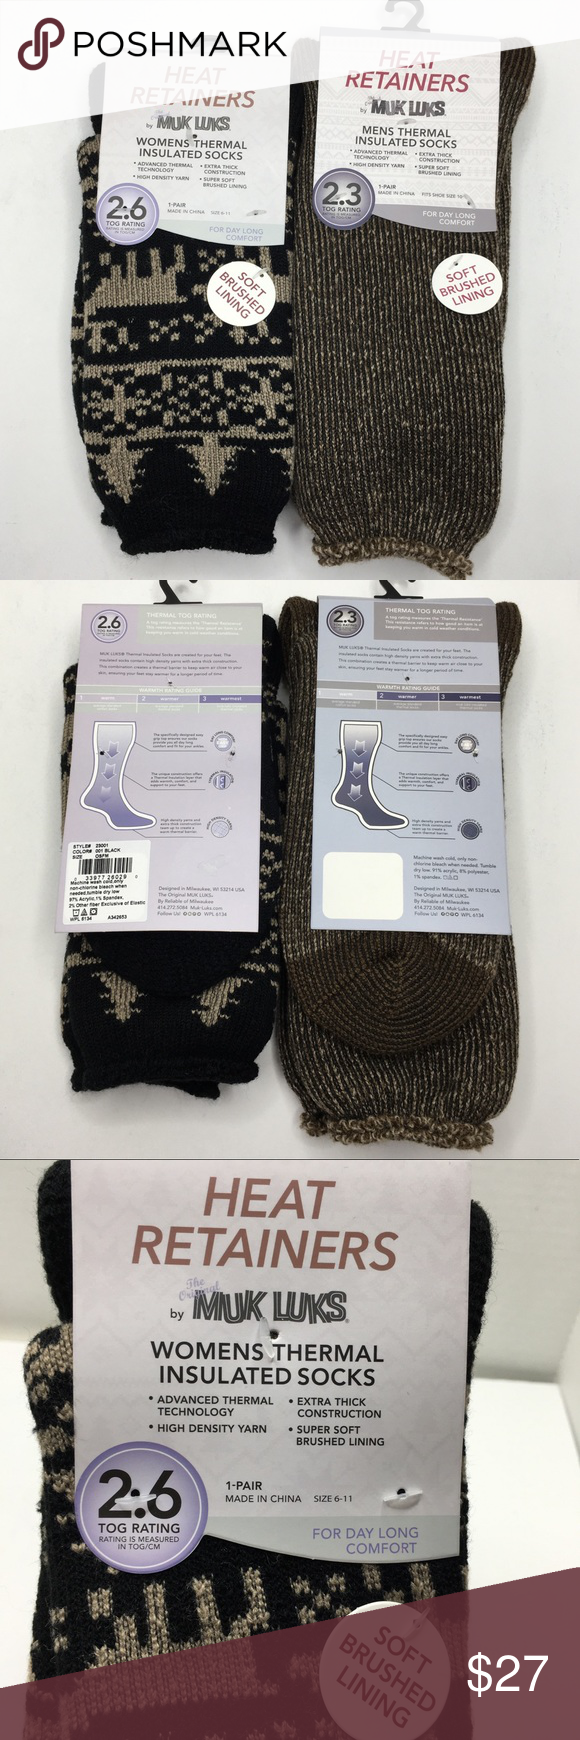 Muk Luks Sock Size 6-11 Womens Heat Retainers Thermal Insulated Super Soft